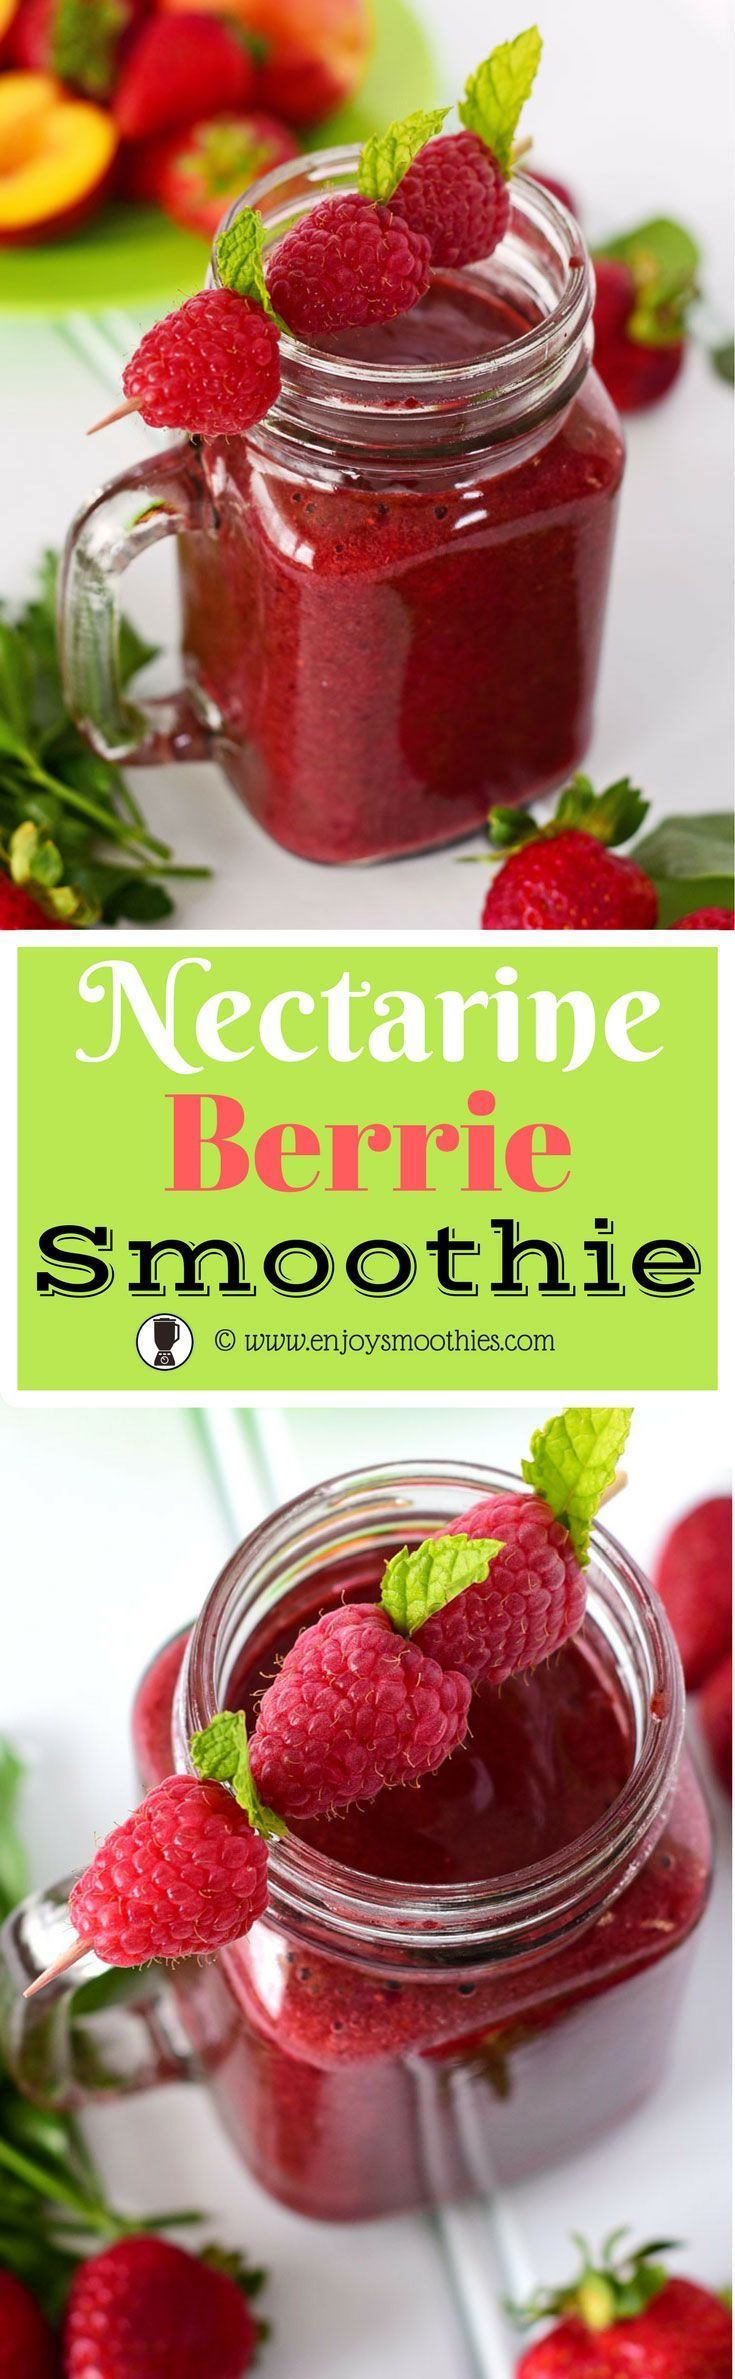 Nectarine Smoothies - antioxidant superstars rich in Vitamins A and C http://juicerblendercenter.com/what-are-the-health-benefits-of-juicing/